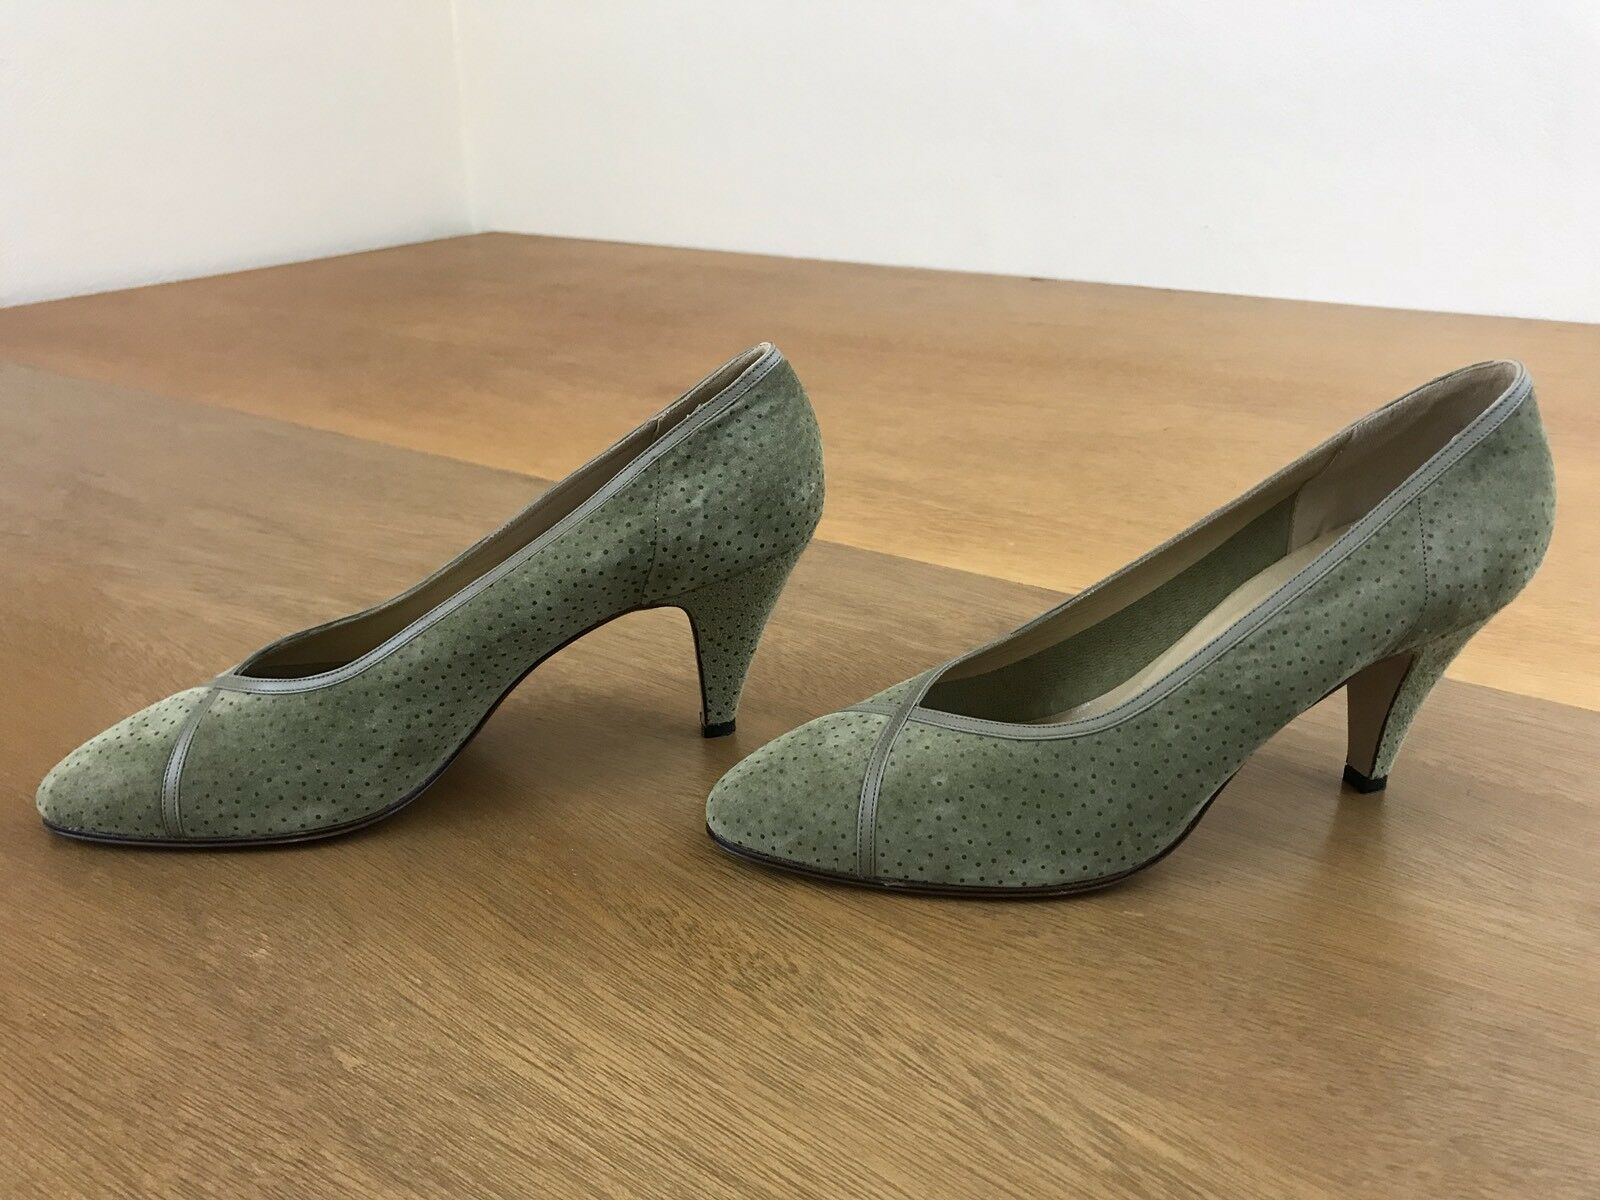 Serena D'Italia Heels Green Suede With Dots Women's Size US 8.5 Made In